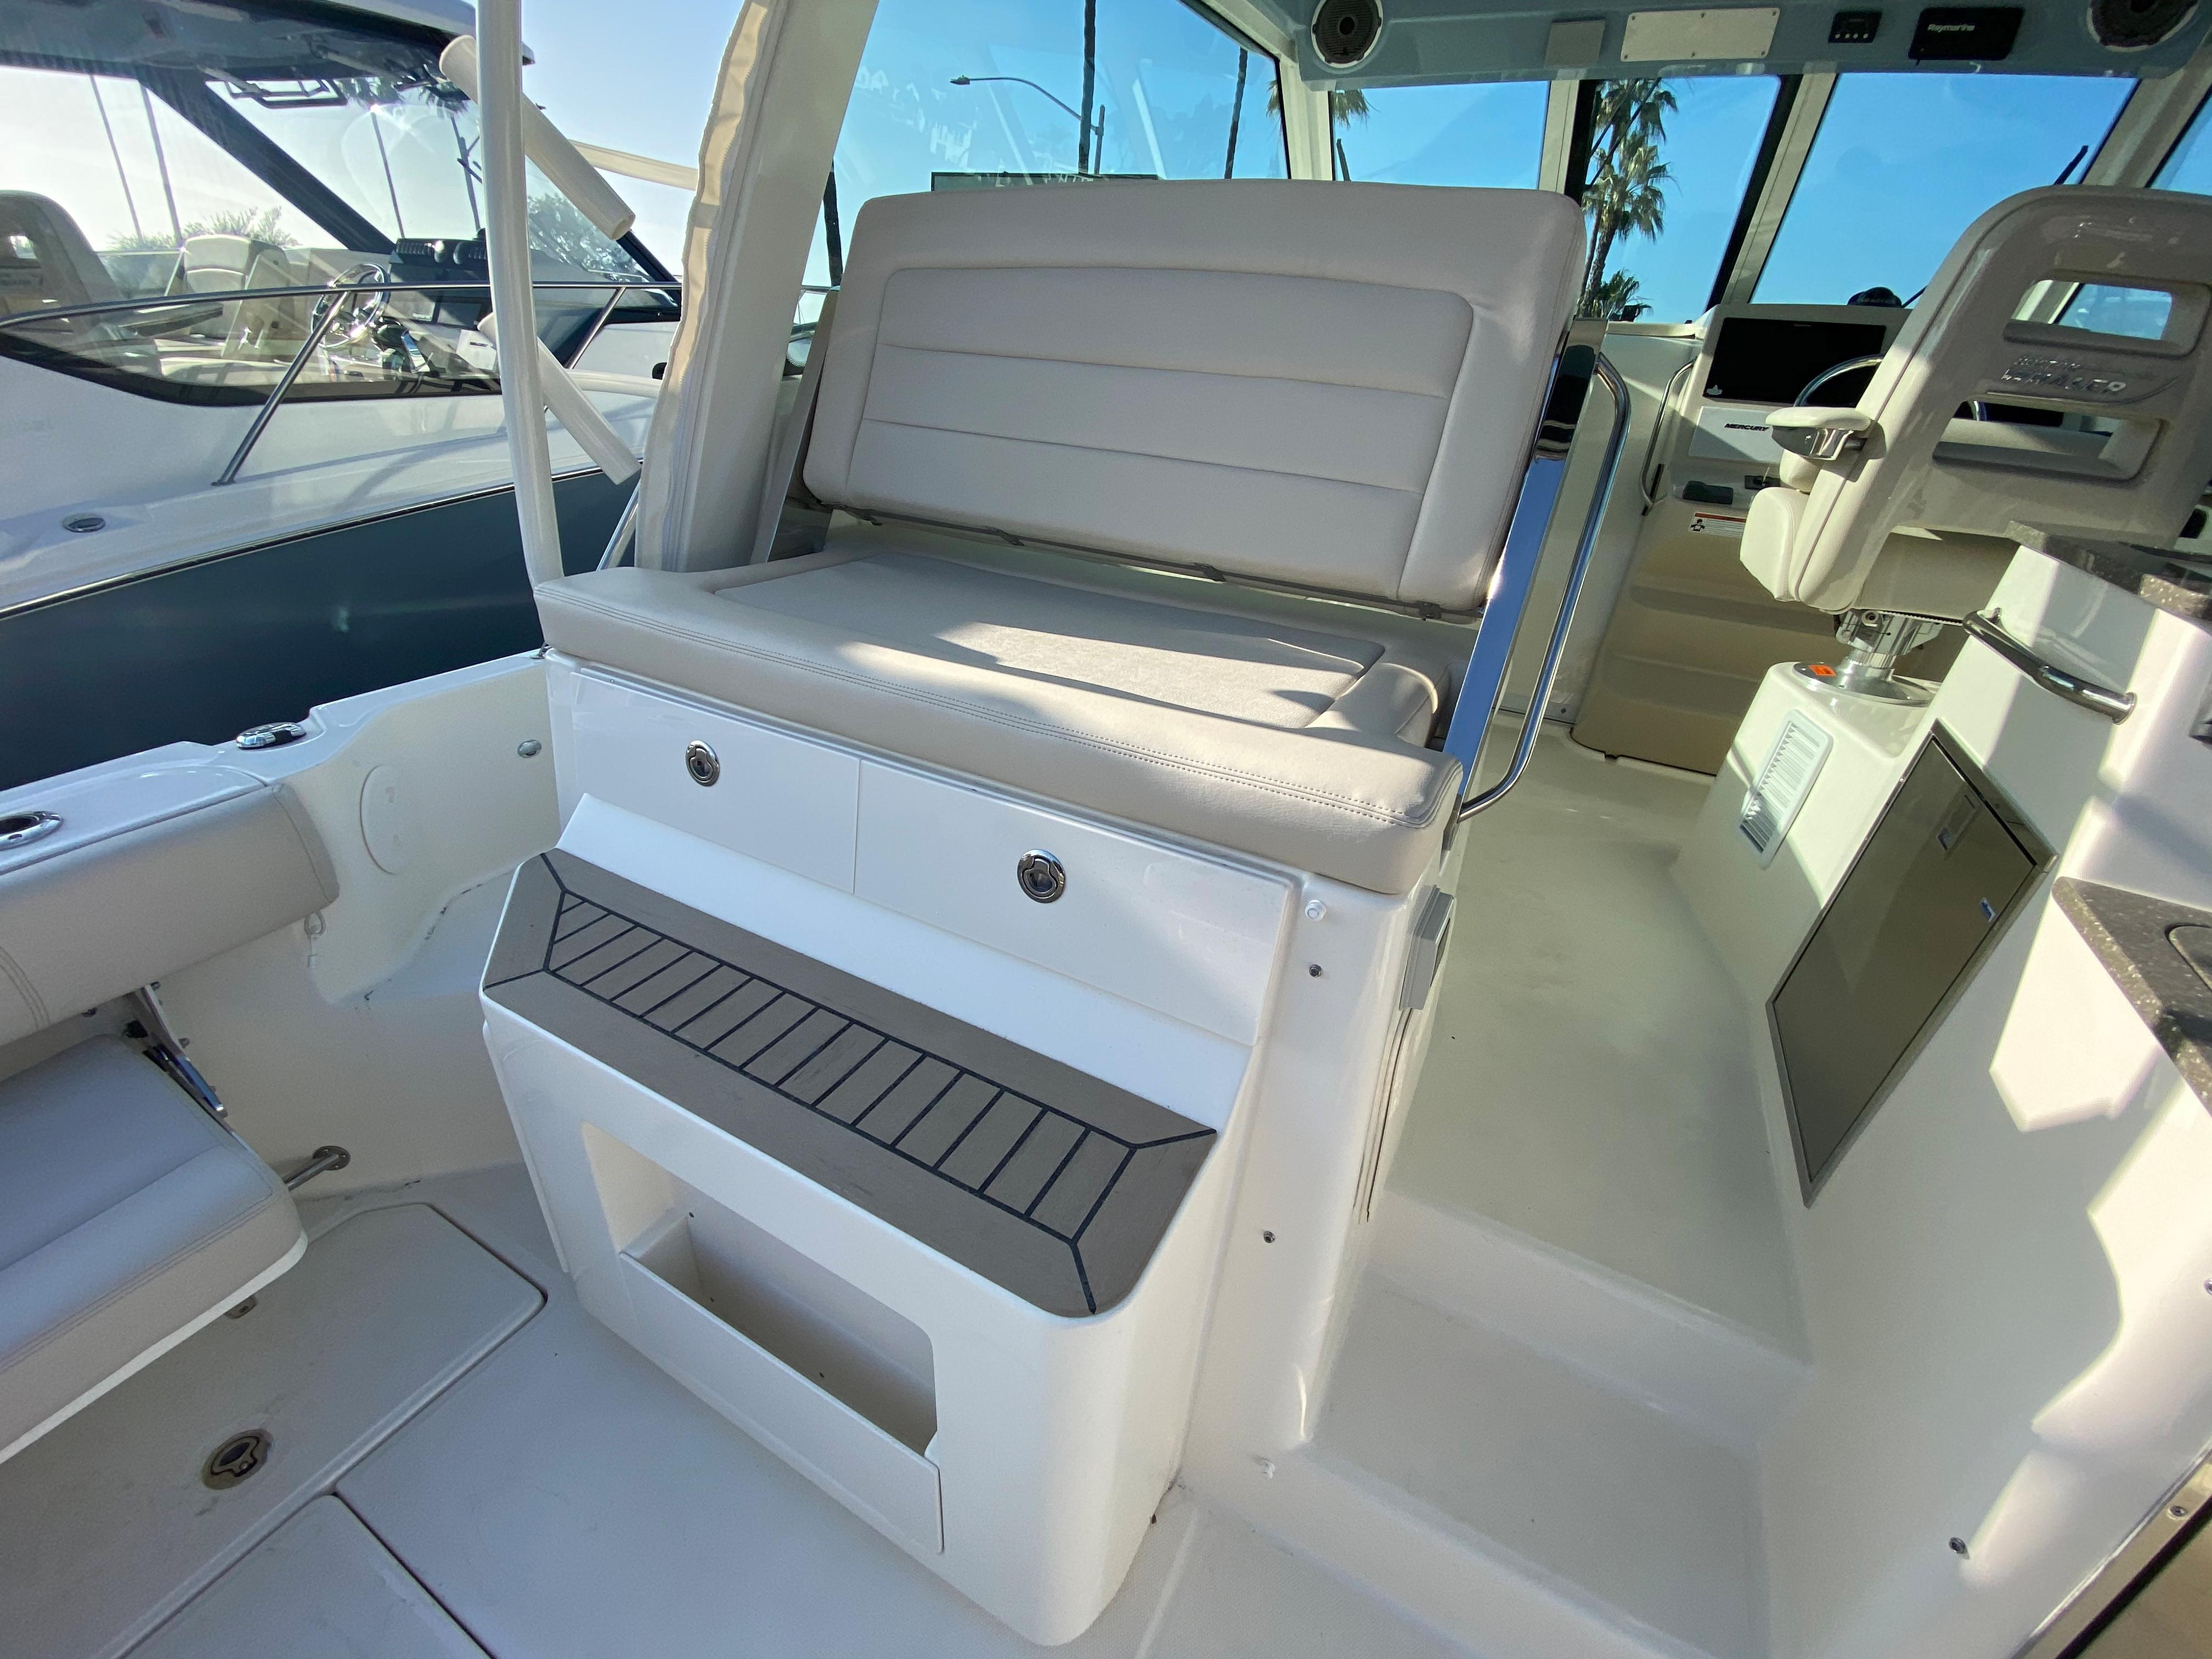 2021 Boston Whaler 345 Conquest #BW0751G inventory image at Sun Country Coastal in Newport Beach